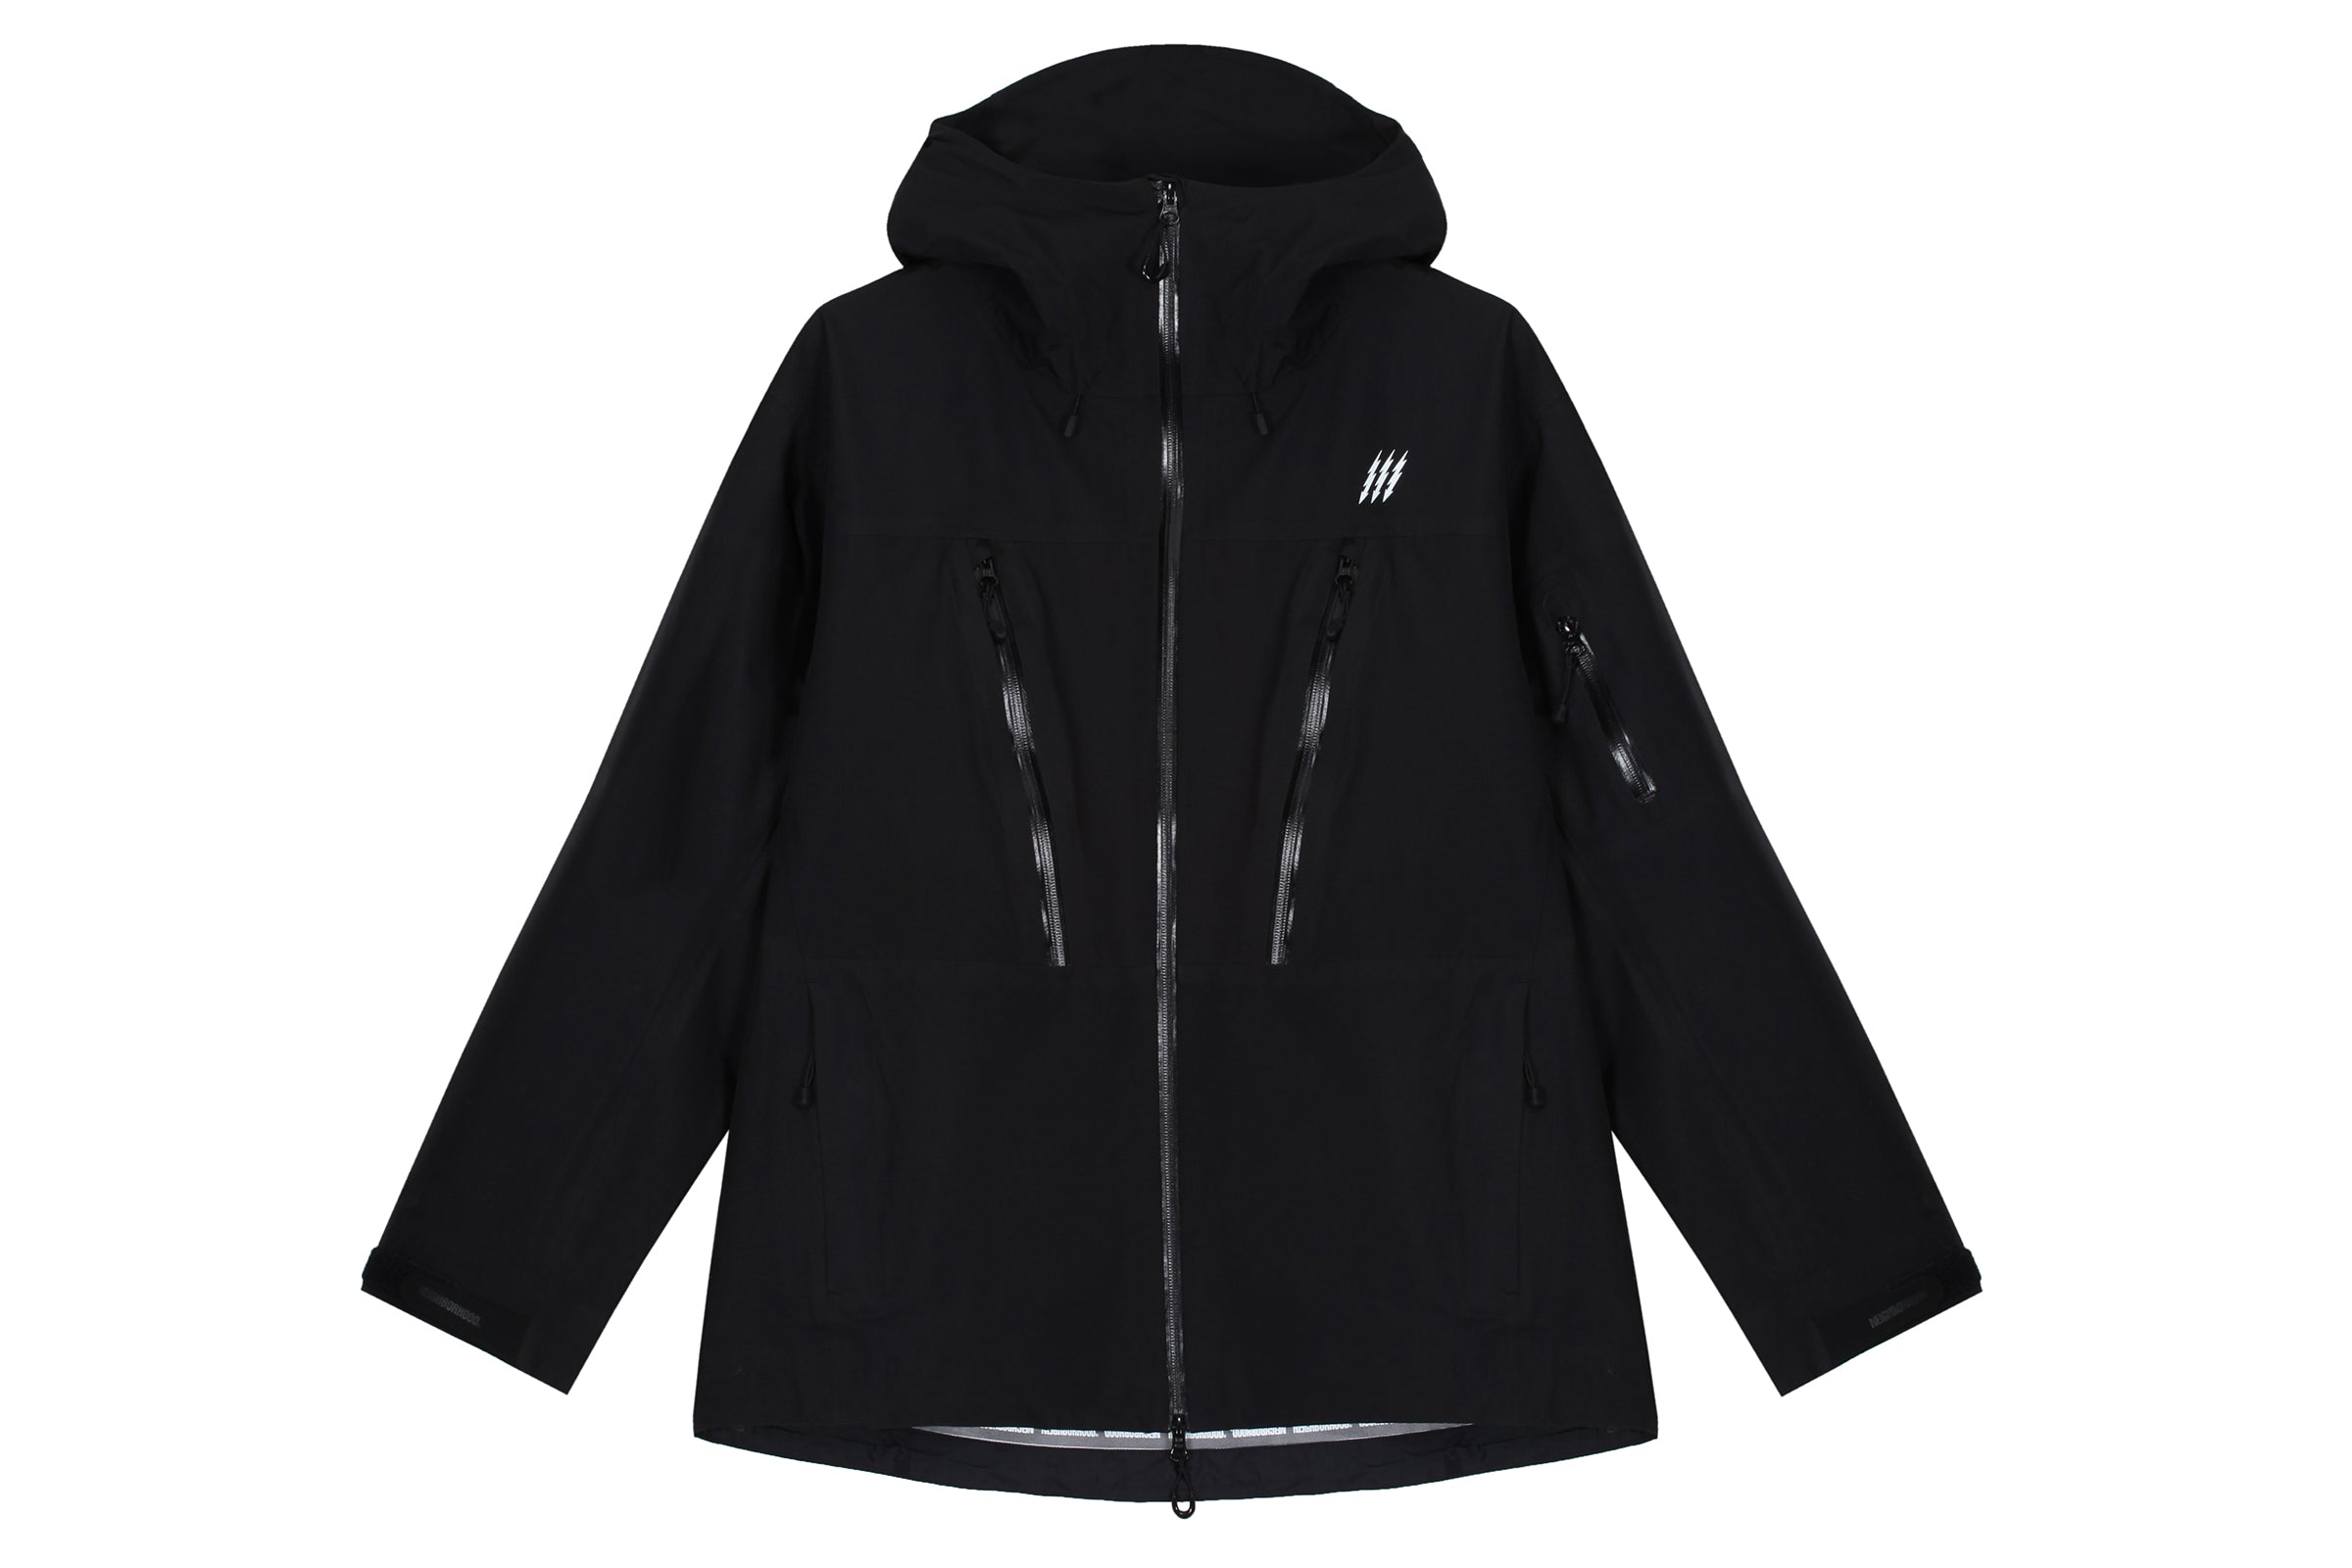 Neighborhood ECWCS EVT Jacket